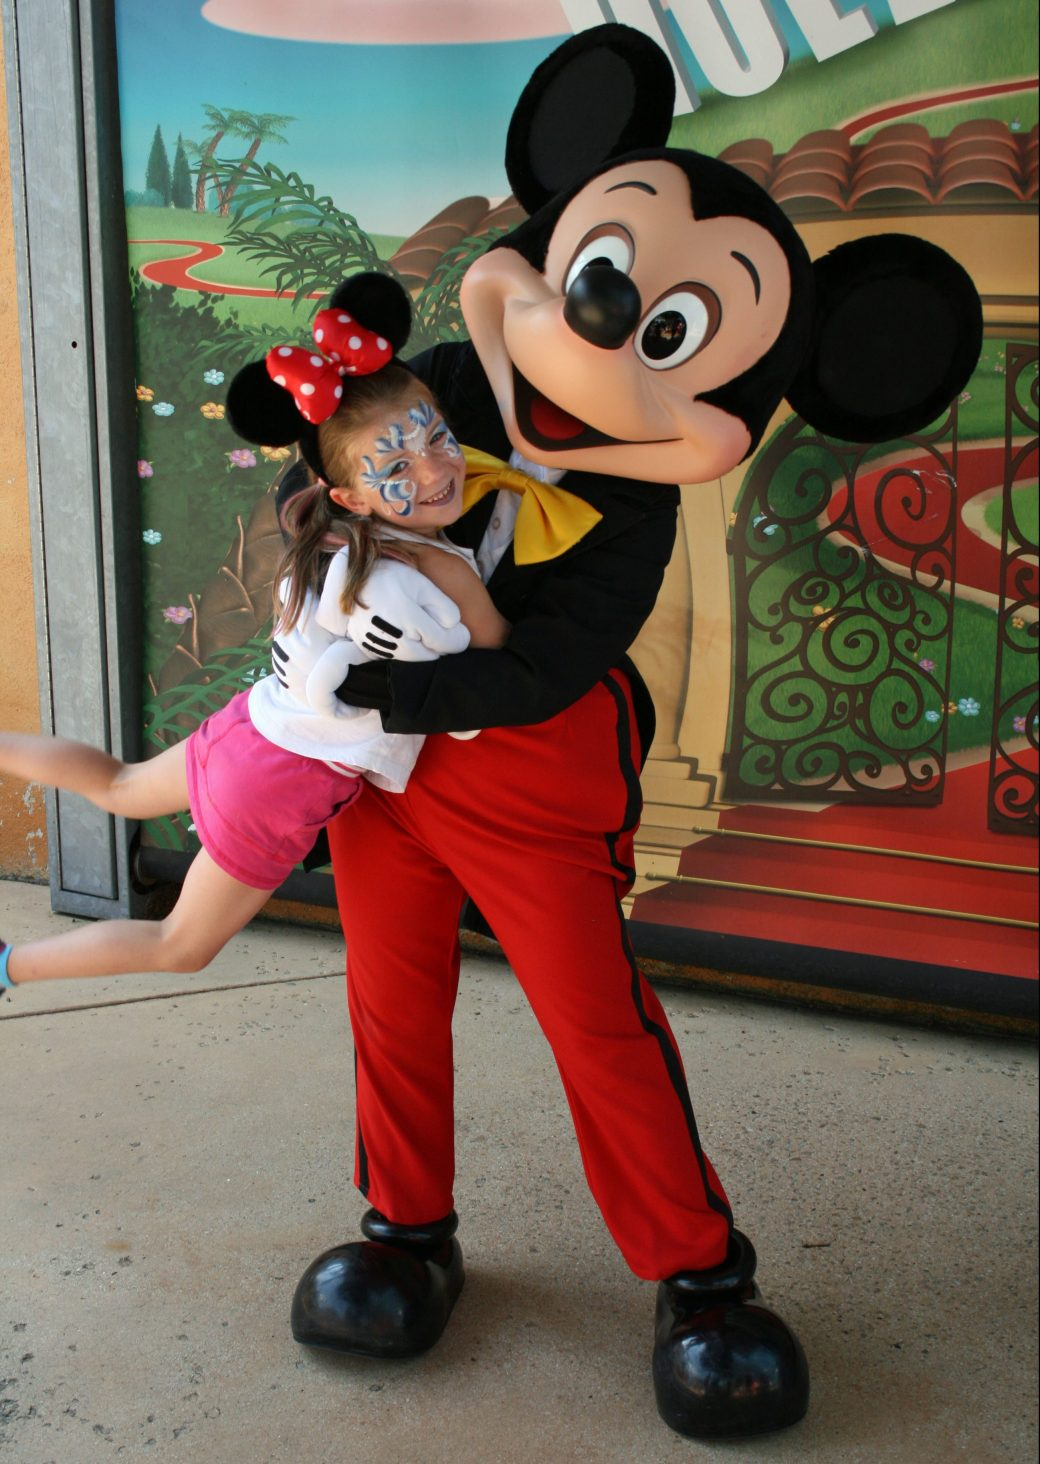 Fun with Mickey Mouse! Disneyland Paris